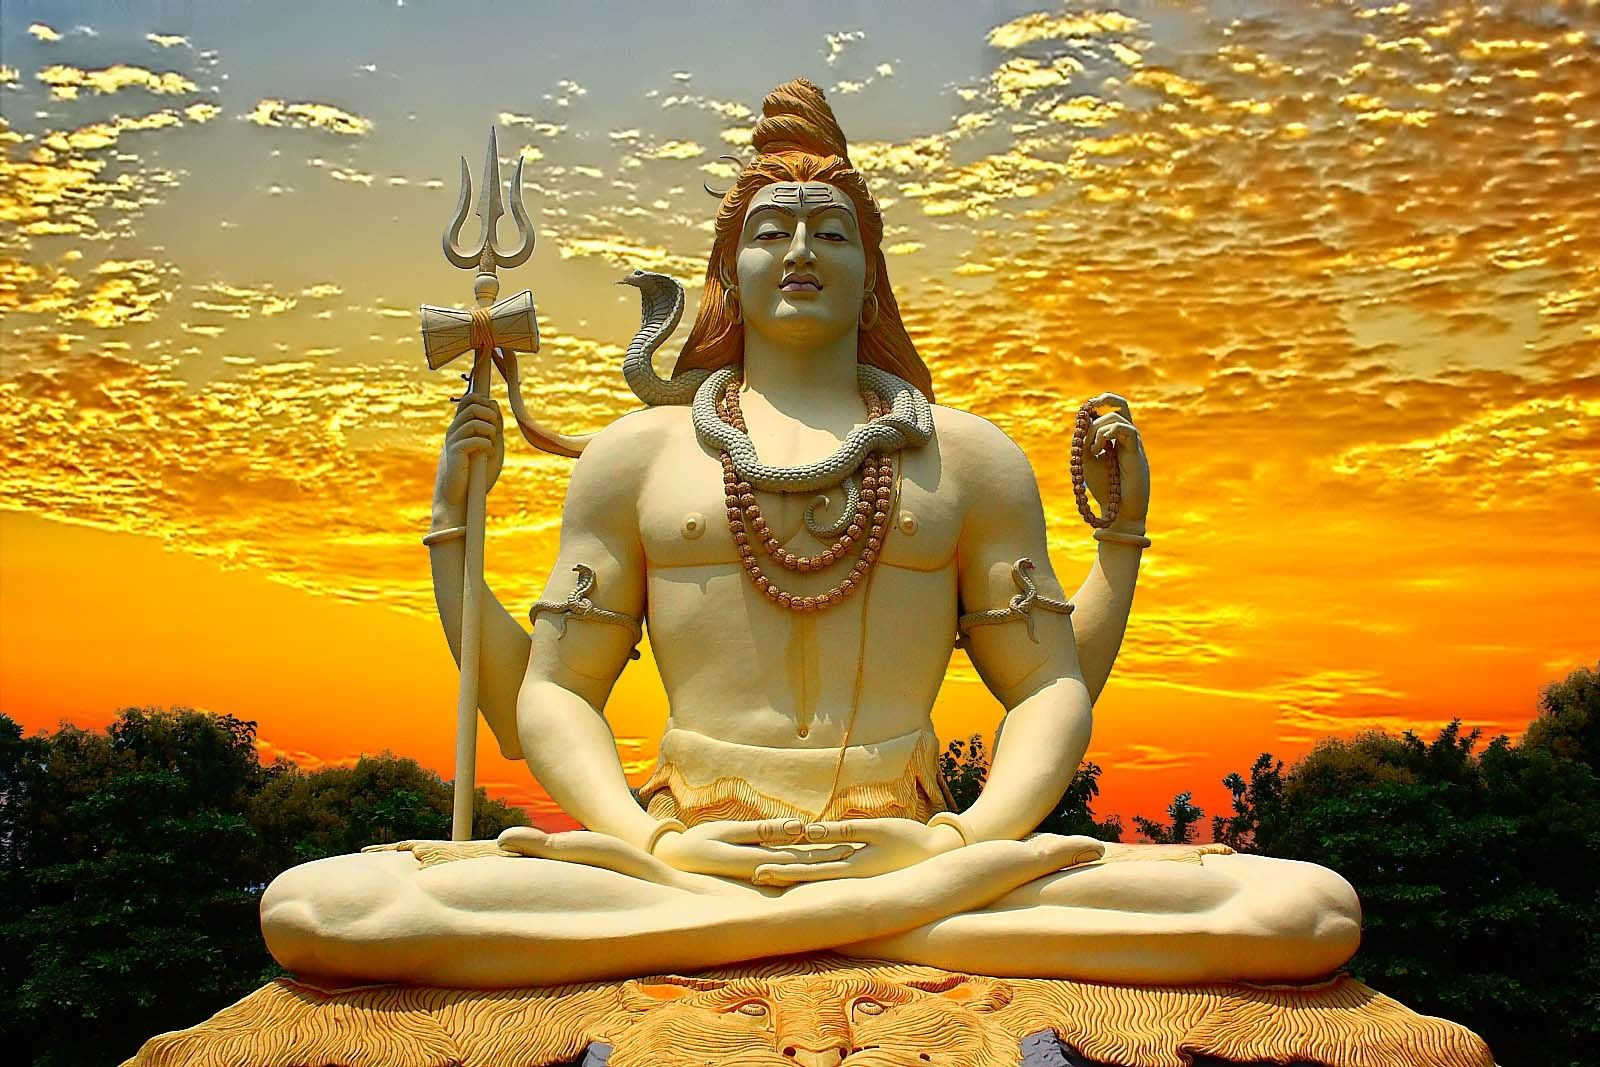 Free Beautiful Wallpaper Of Lord Shiva 3d Download New Beautiful Wallpaper Of Lord Shiva 3d Downloa Lord Shiva Statue Lord Shiva Hd Wallpaper Shiva Statue